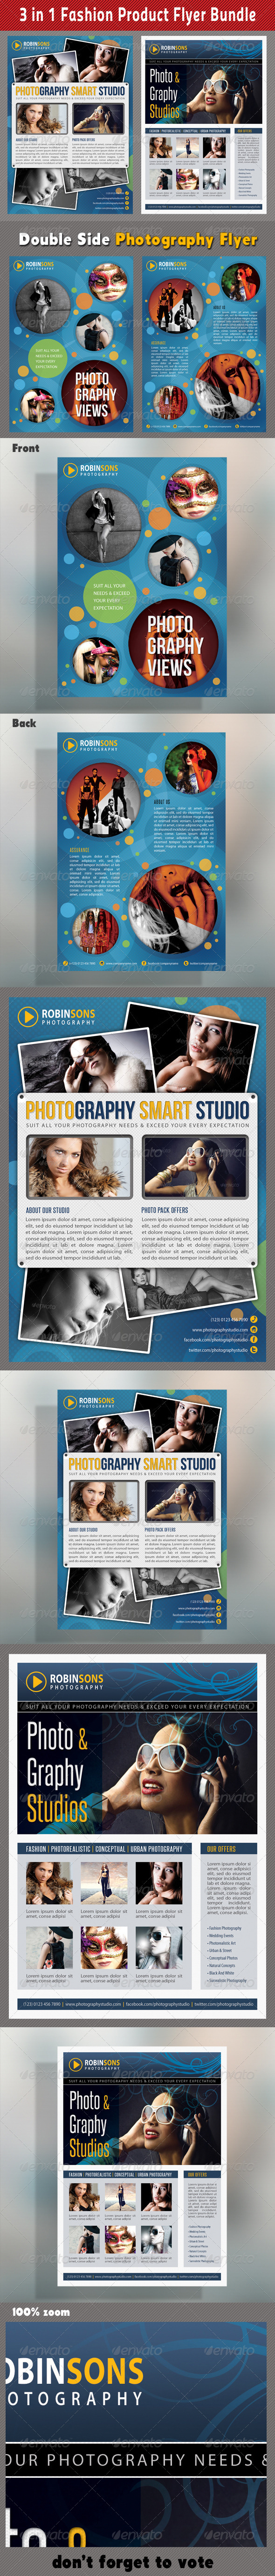 3 in 1 Fashion Product Flyer Bundle 13 - Commerce Flyers